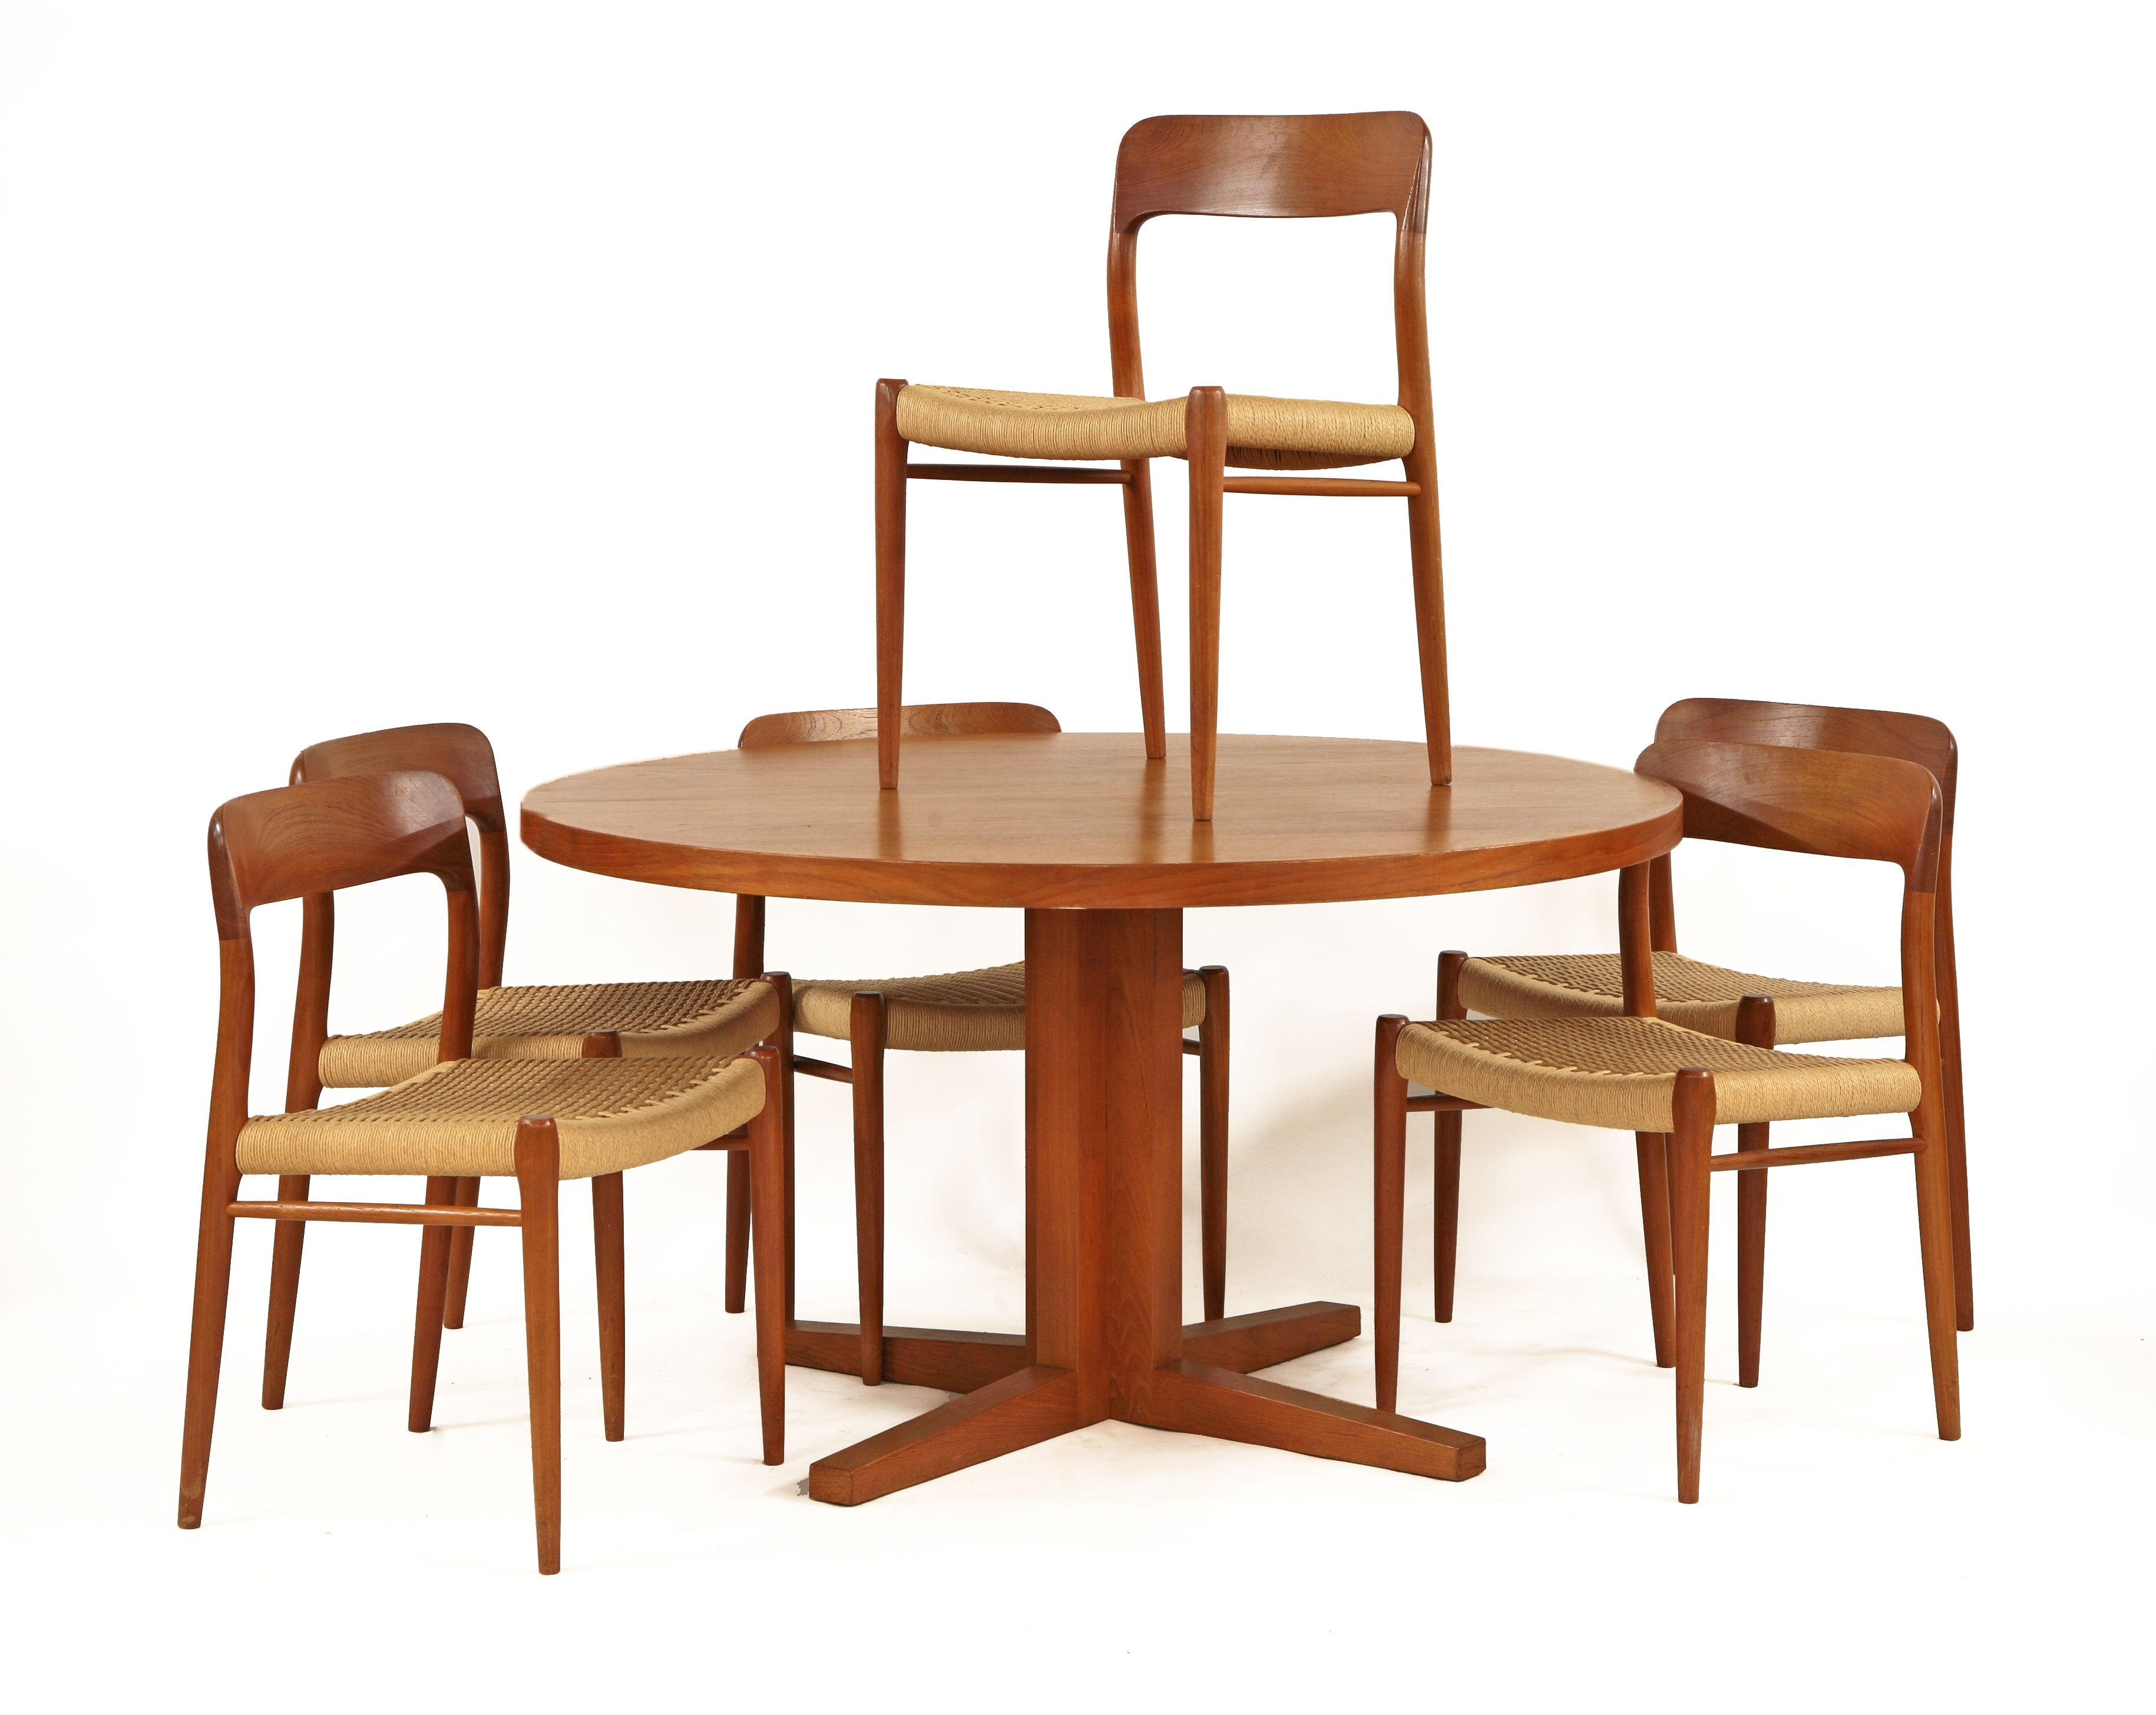 A Set Of Six Teak Model 75 Dining Chairs Designed By Niels O Mller For J L With Woven Cord Seats And Backs Labelled Danish Furniture